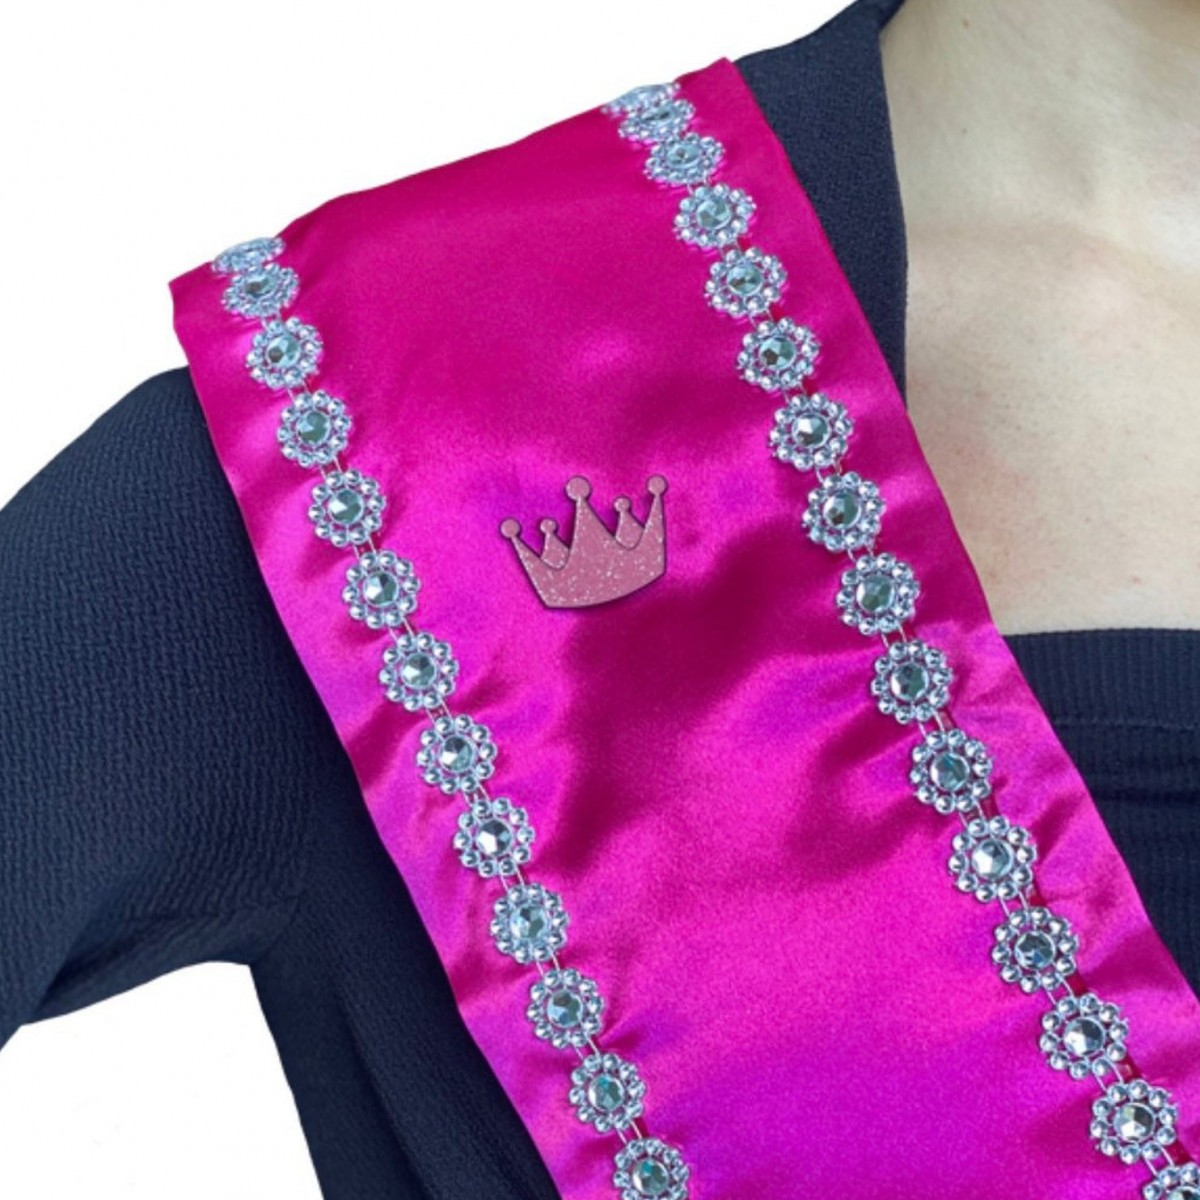 Wonder Queen: Magnet with Pink Glitter Crown for Pageant Contestant Numbers, Sashes, Name Tags; Super Strong Bling Magnet from The Queen's Magnet